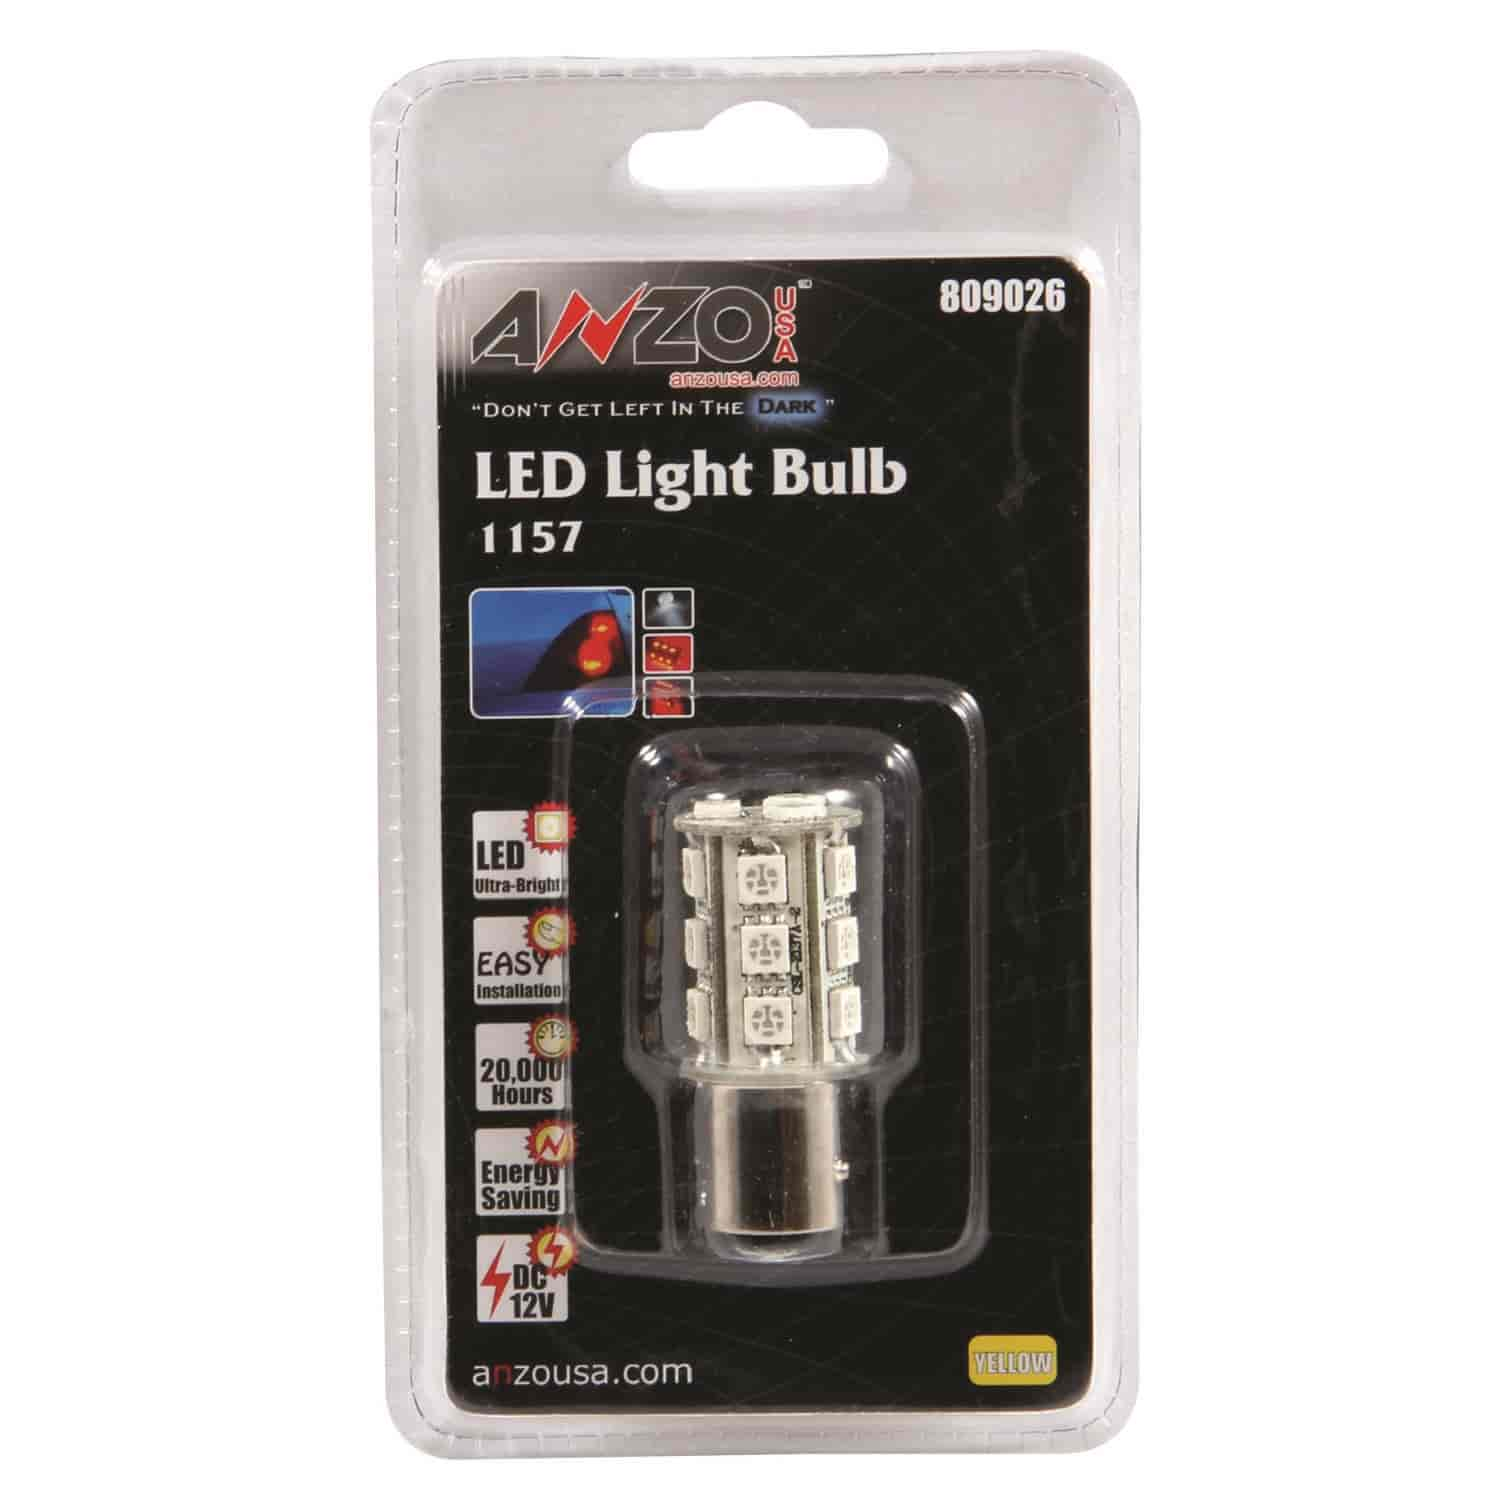 Anzo 809026 - Anzo LED Universal Light Bulbs